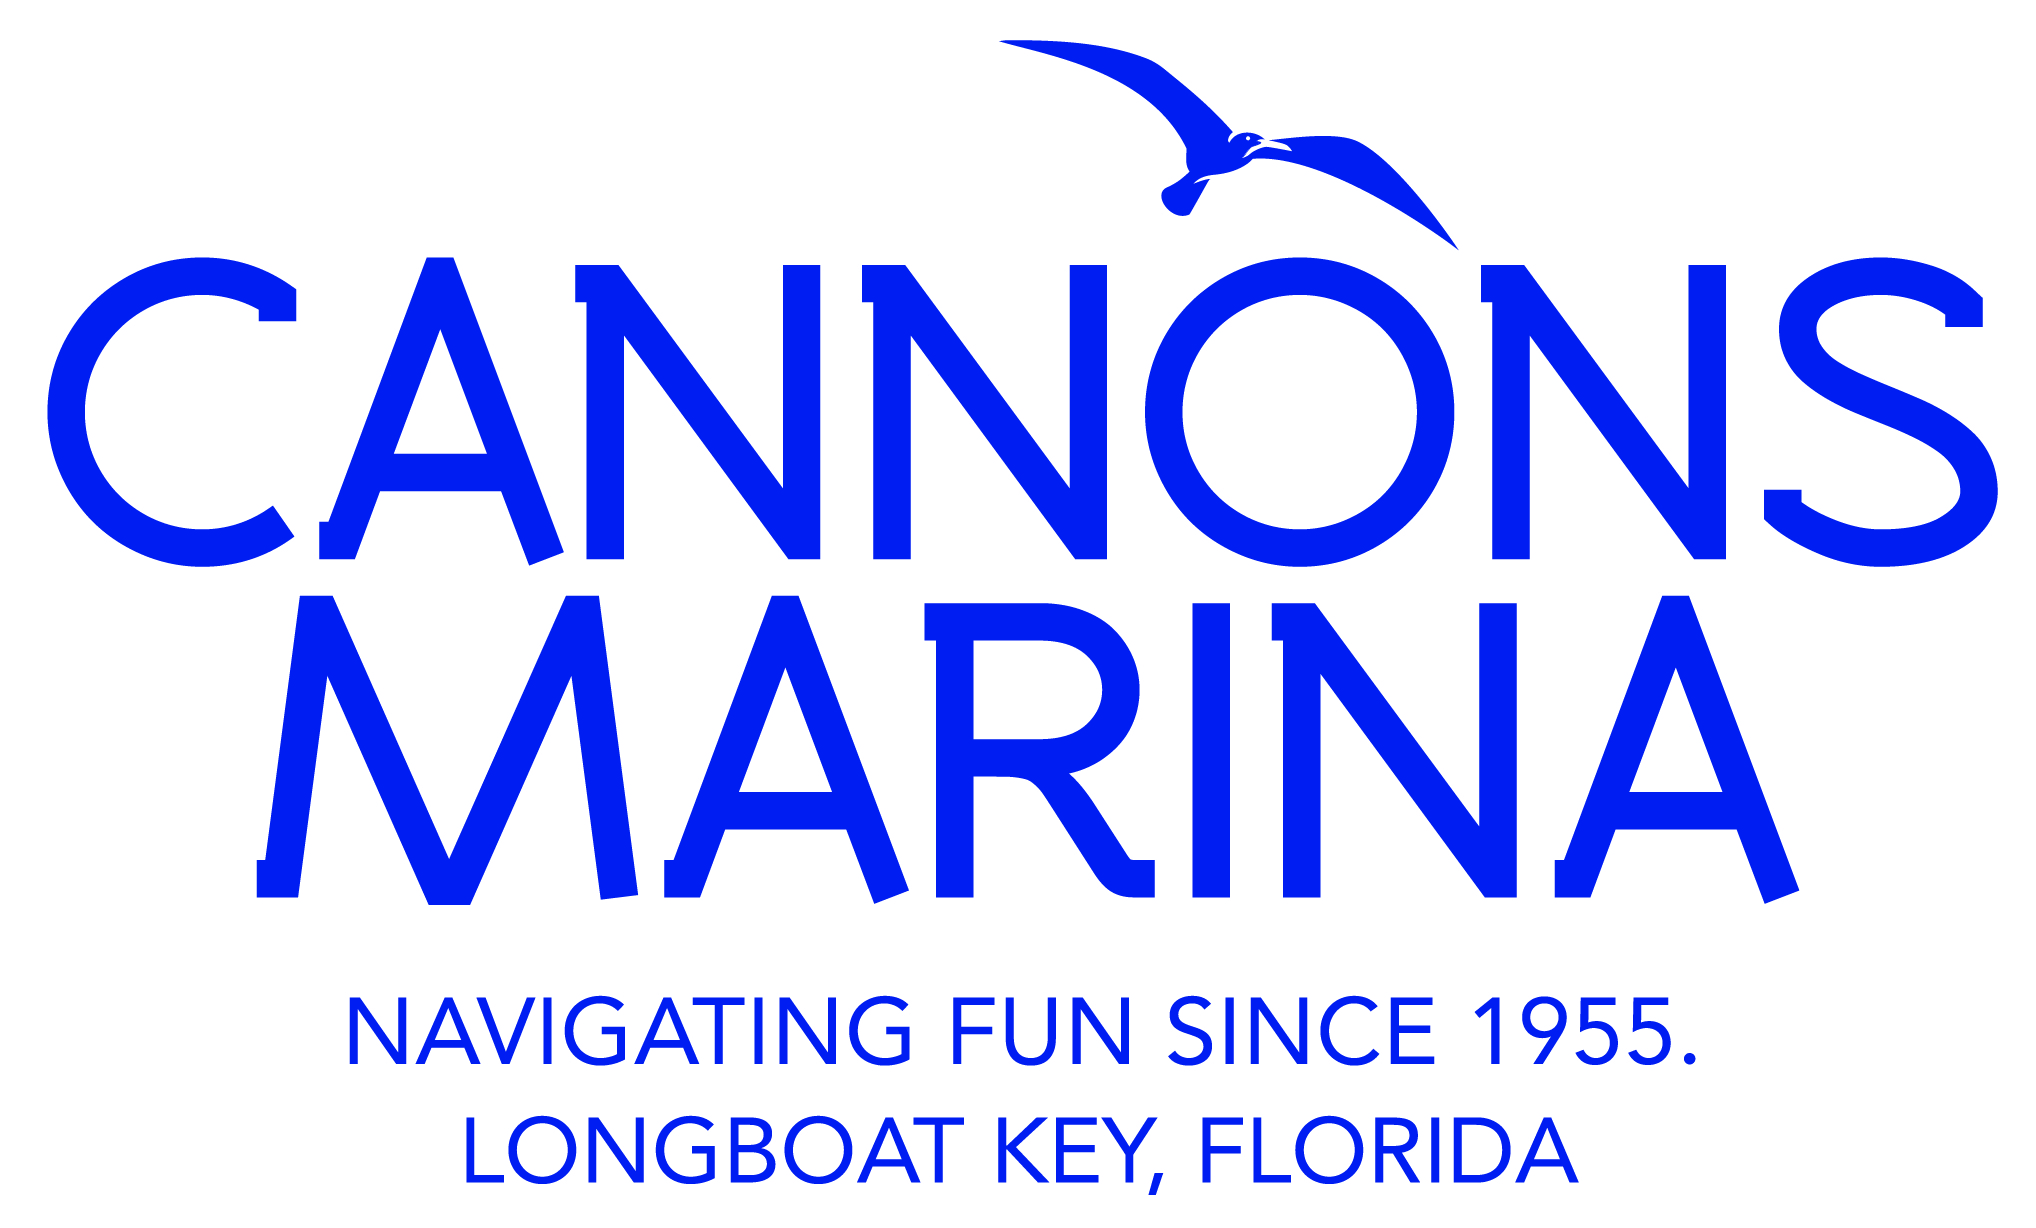 CANNONS MARINA, INC.